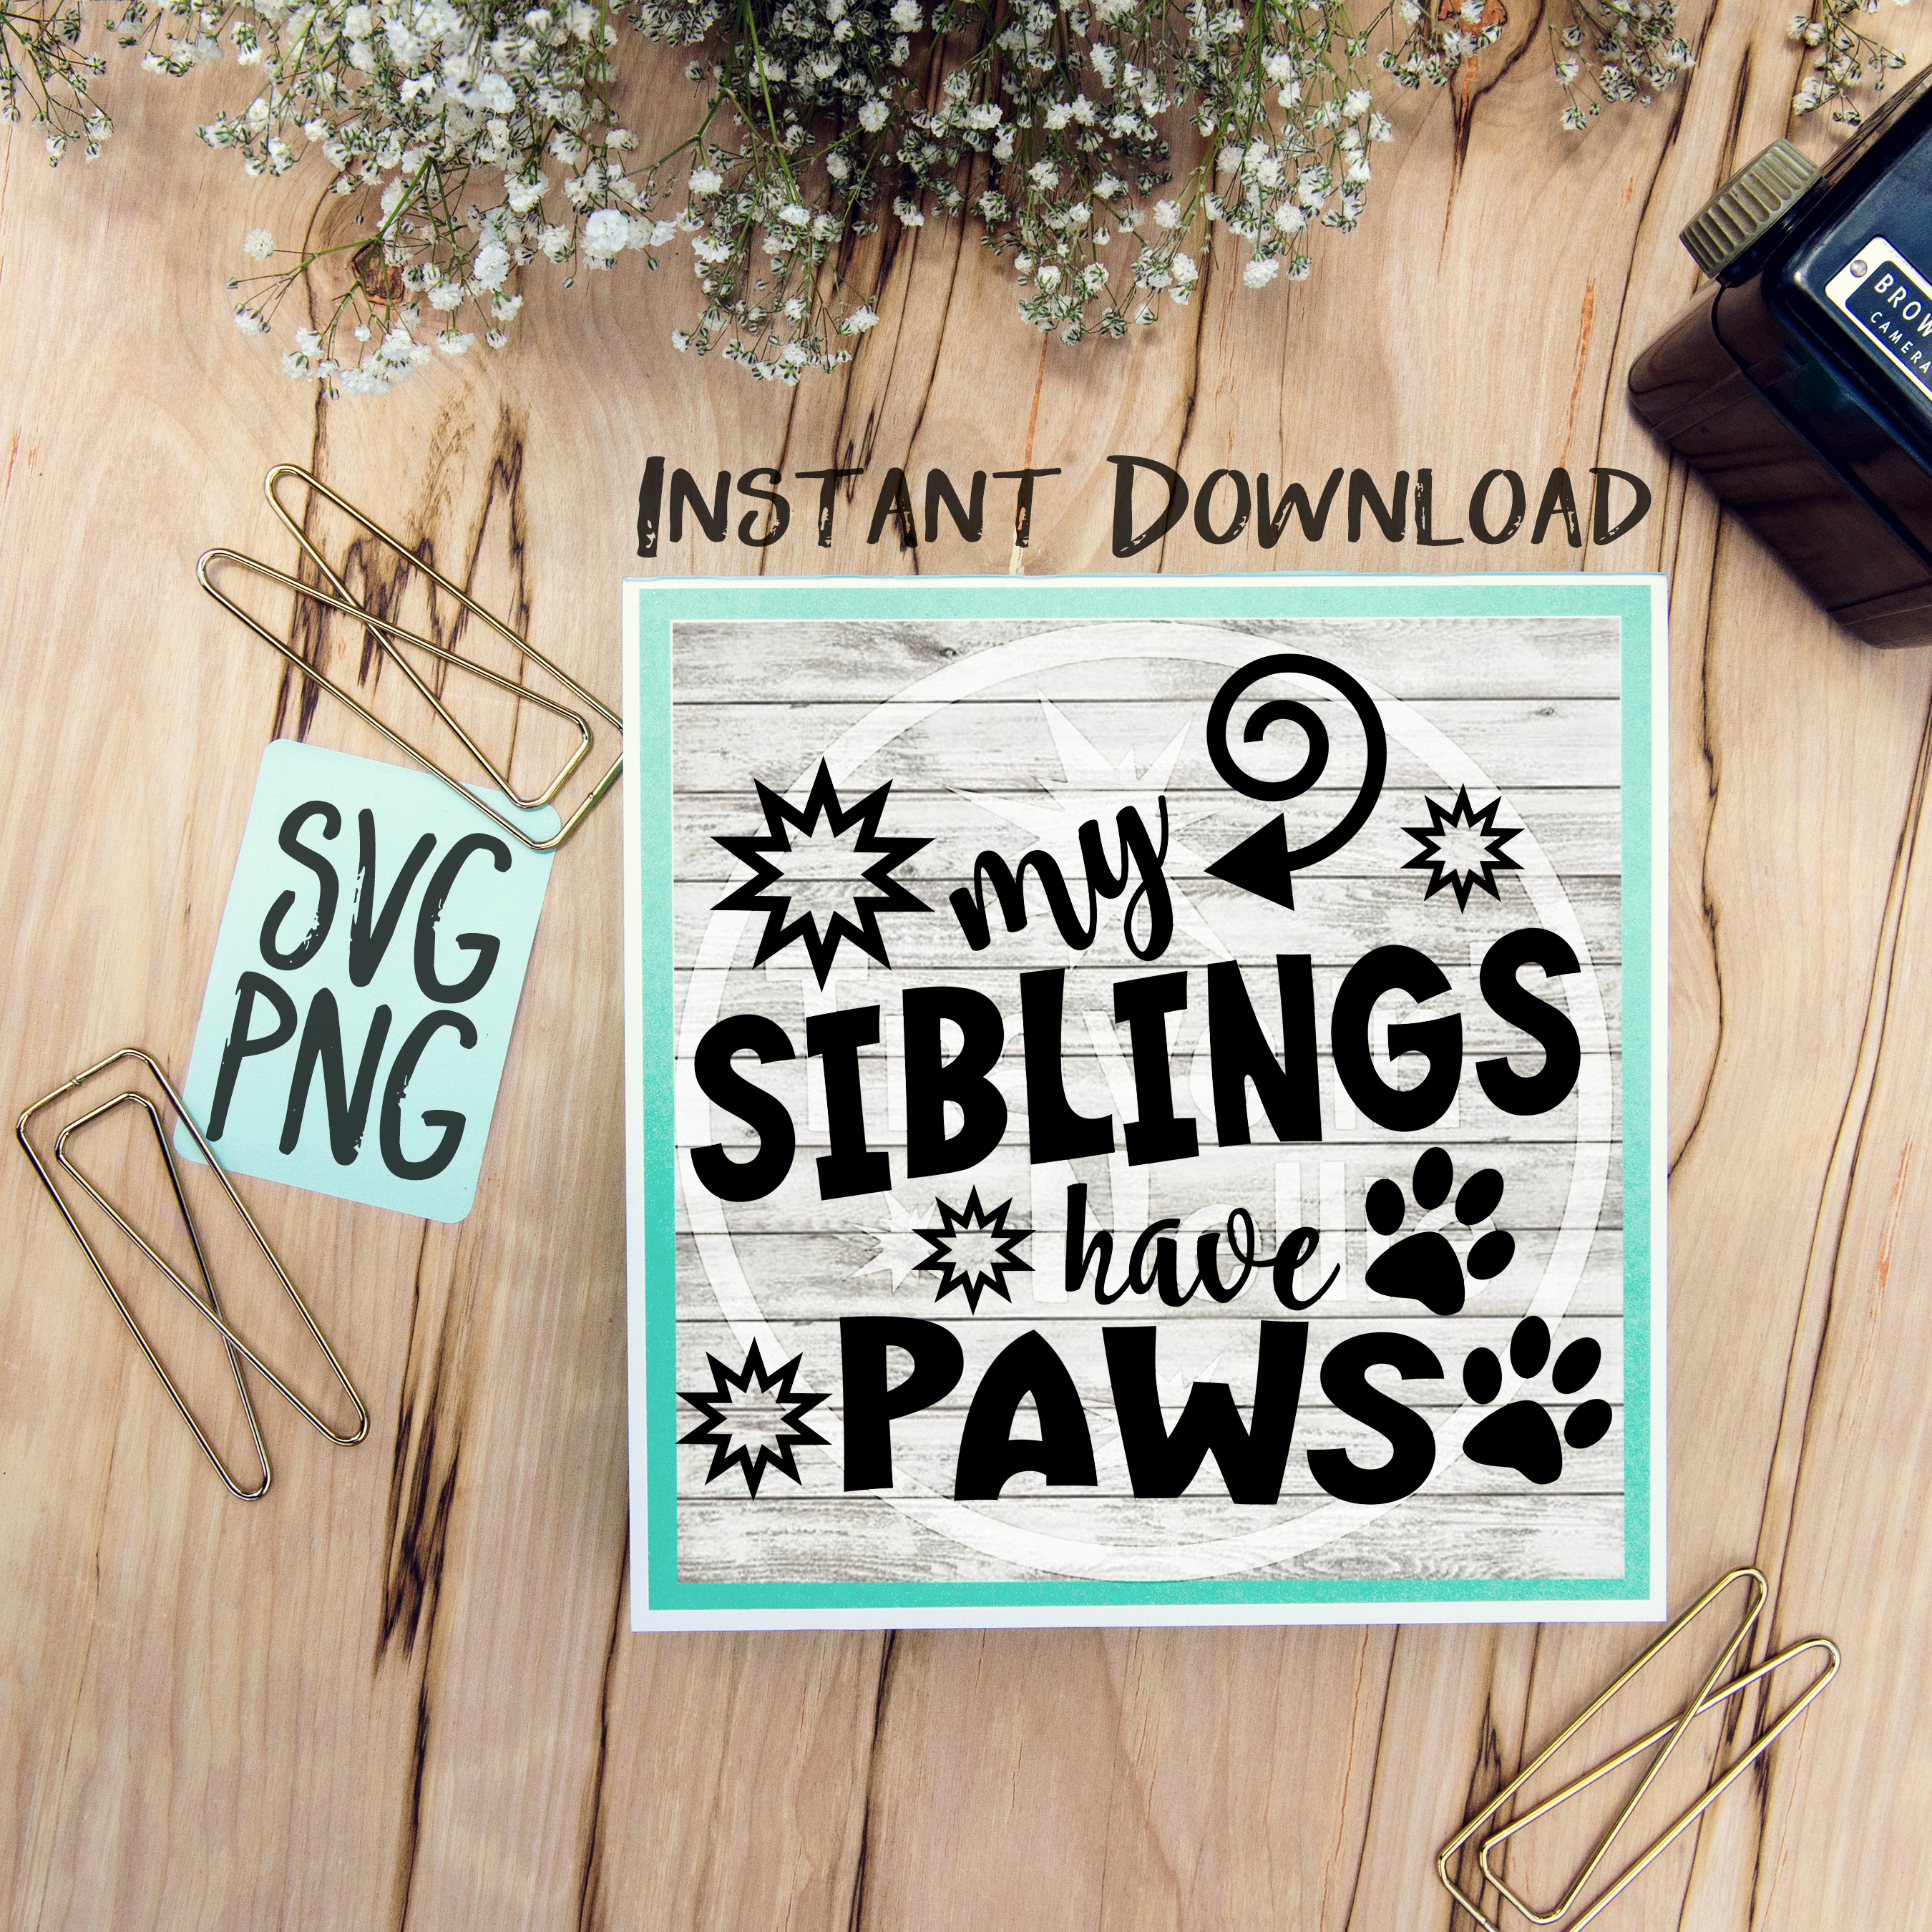 My Siblings Have Paws SVG Image Design for Vinyl Cutters Print DIY Shirt Design Brother Cricut Cameo Cutout Dog Brother Sister Child  example image 1